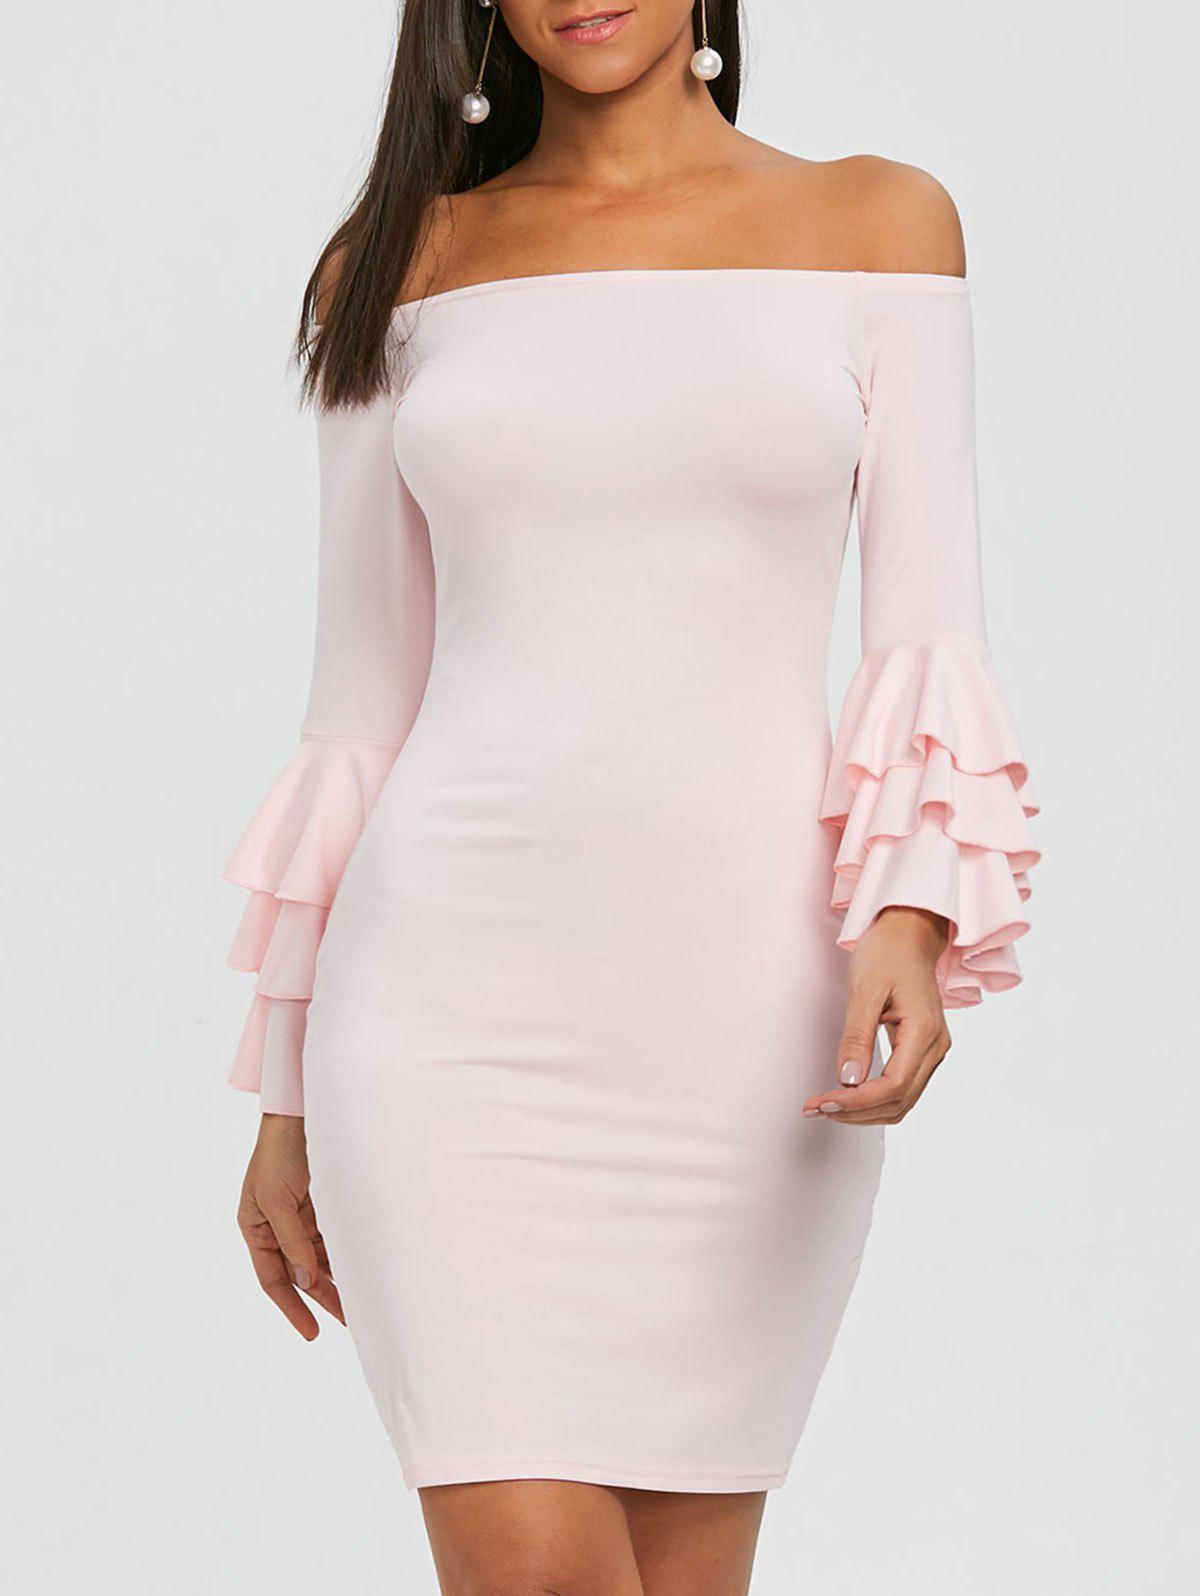 7705c0758bcb 58% OFF   2019 Flare Sleeve OFF Shoulder Mini Bodycon Dress ...